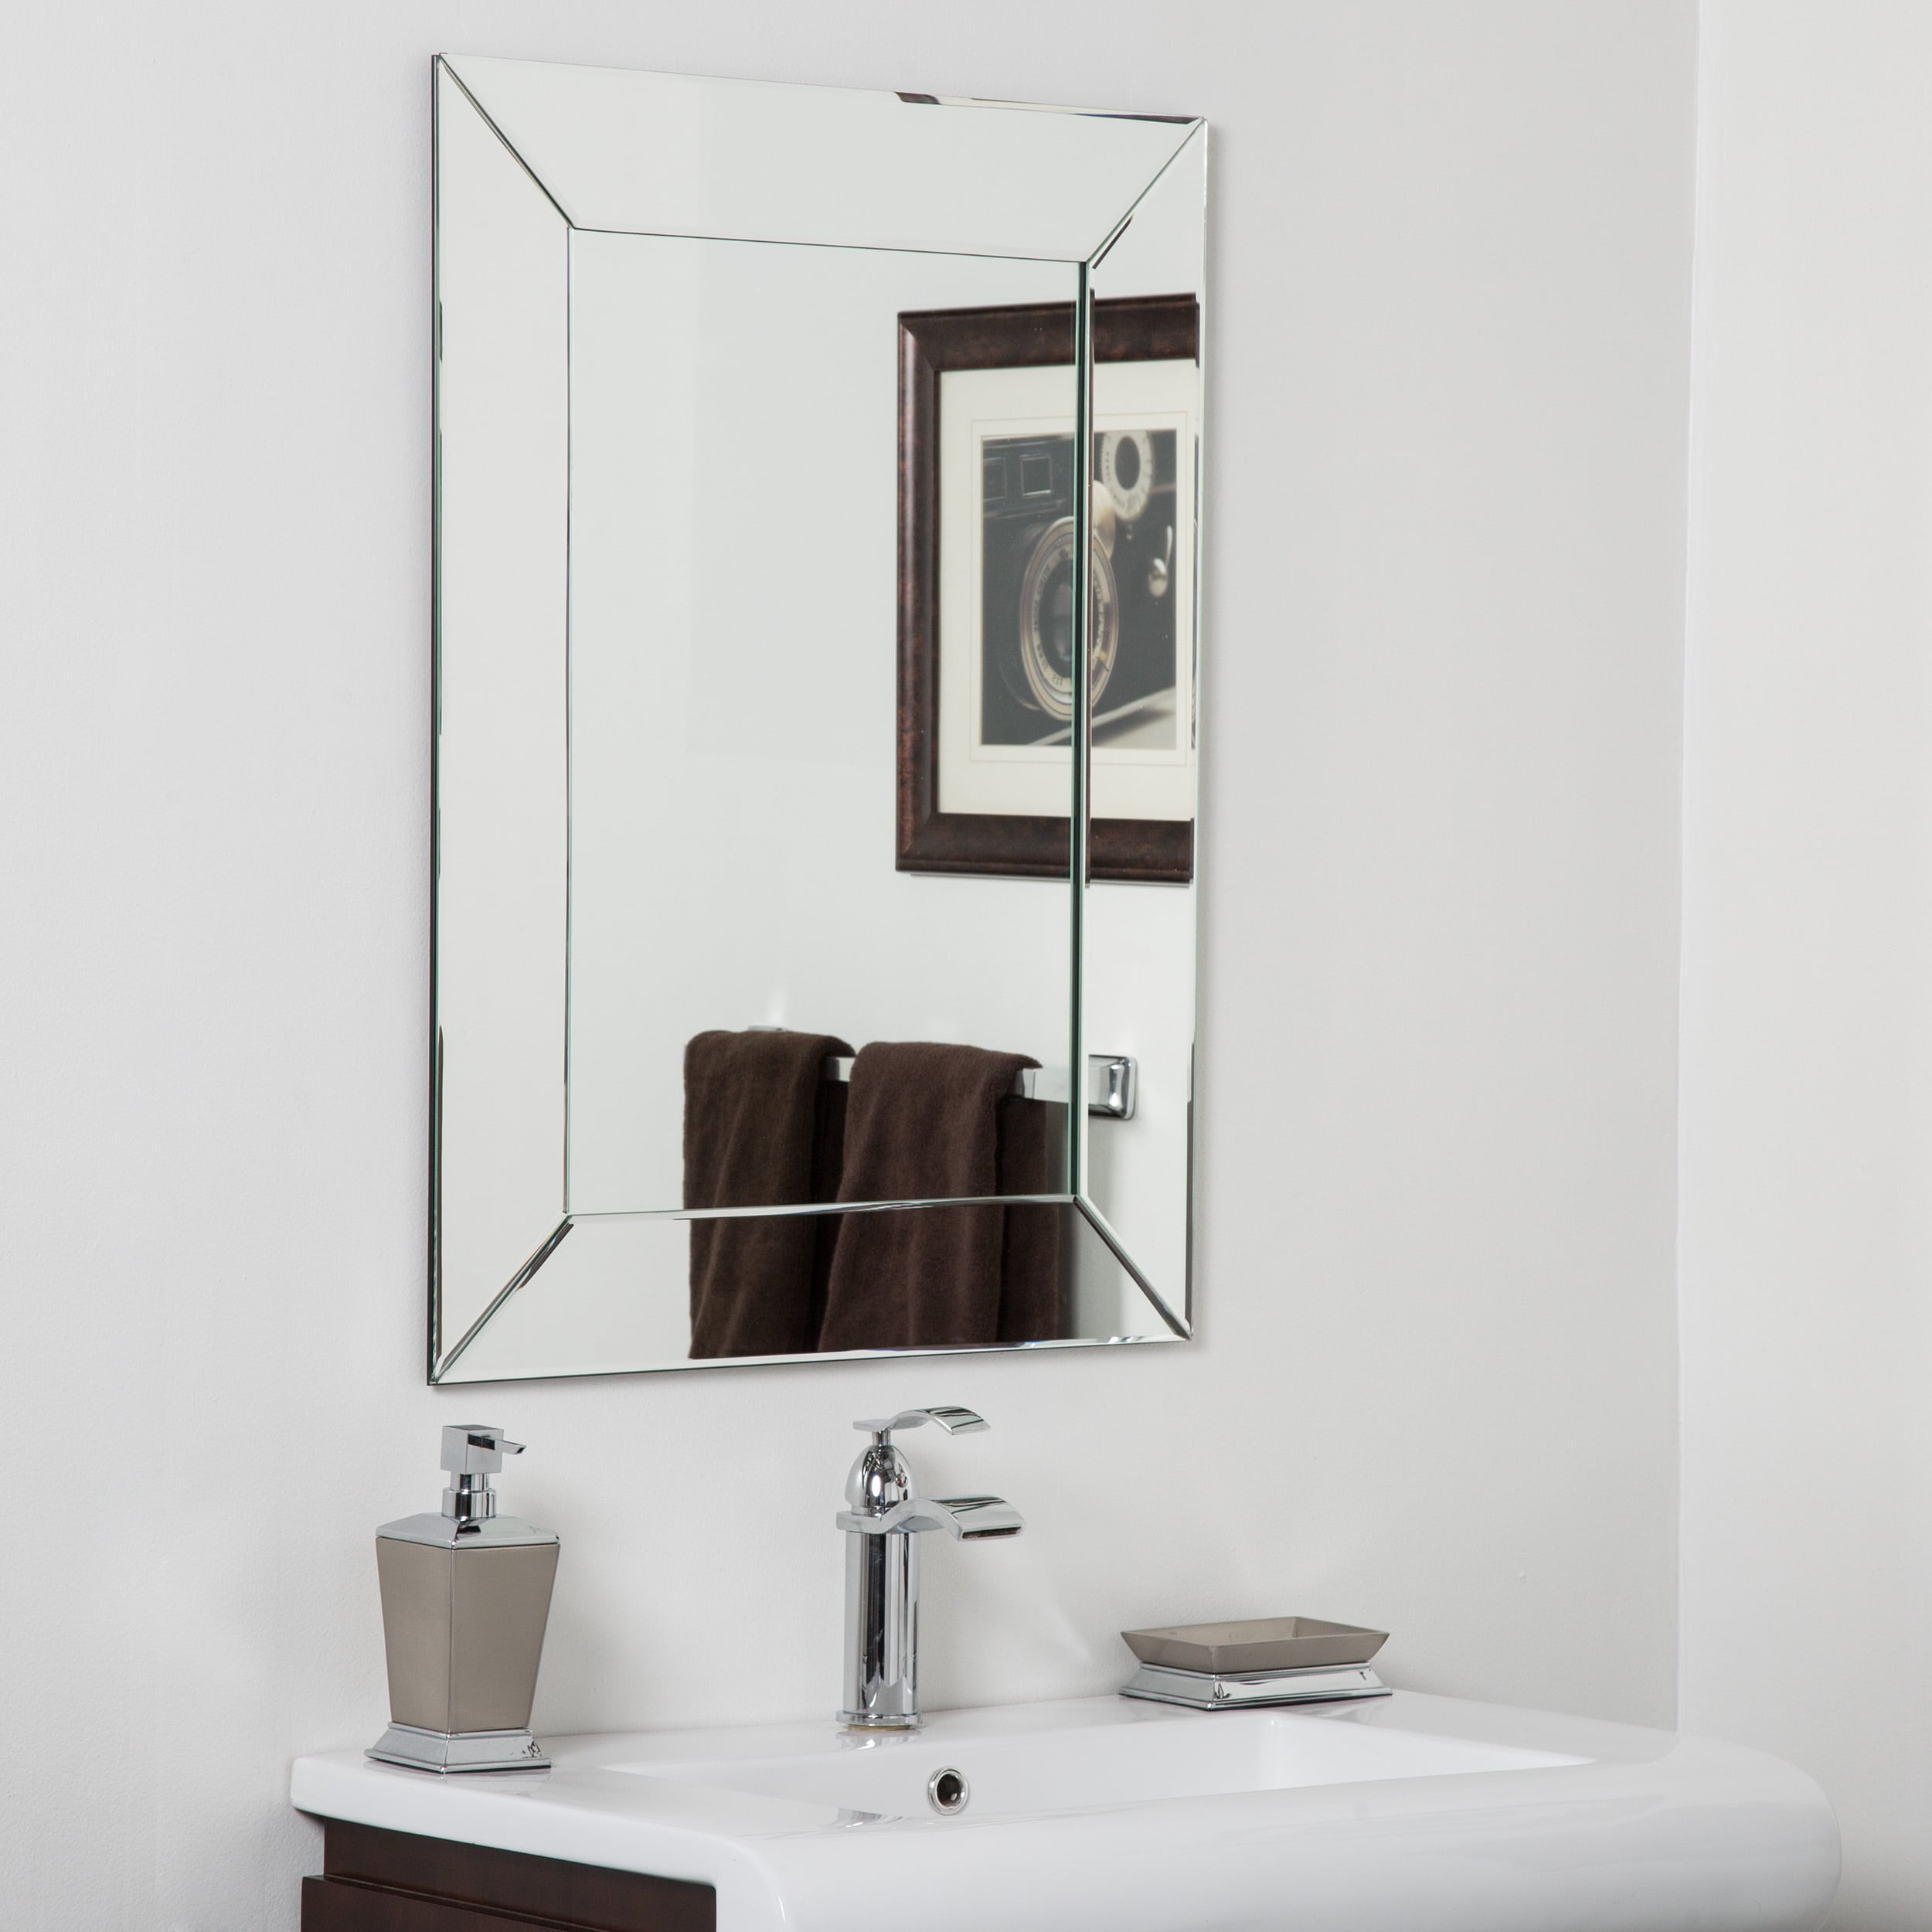 Shop avie modern clear glass frameless bathroom mirror free shipping today overstock com 13002500